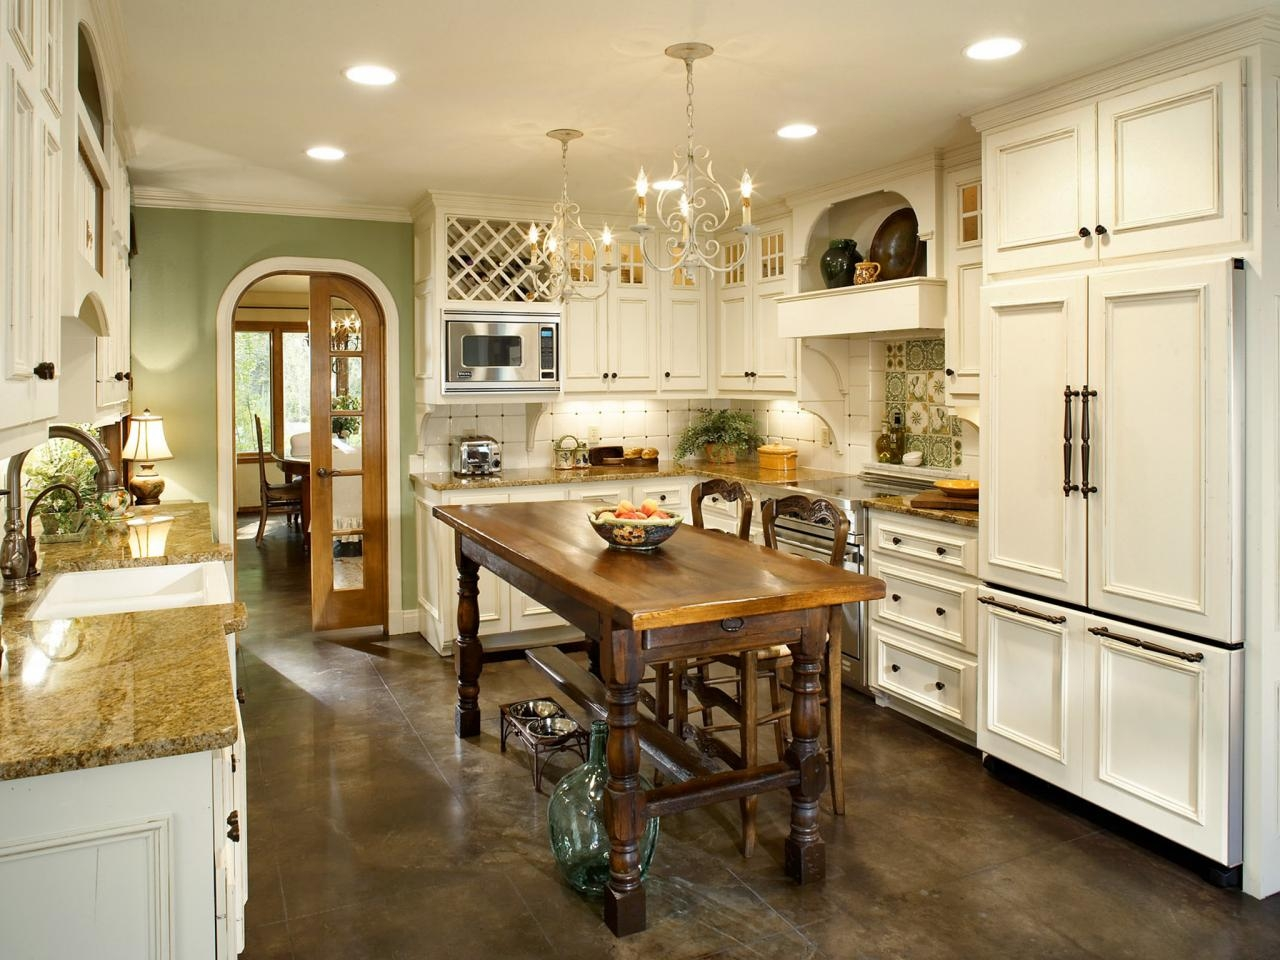 French Country Kitchen Makeover Bonnie Pressley Hgtv Within French Country Chandeliers For Kitchen (View 1 of 25)